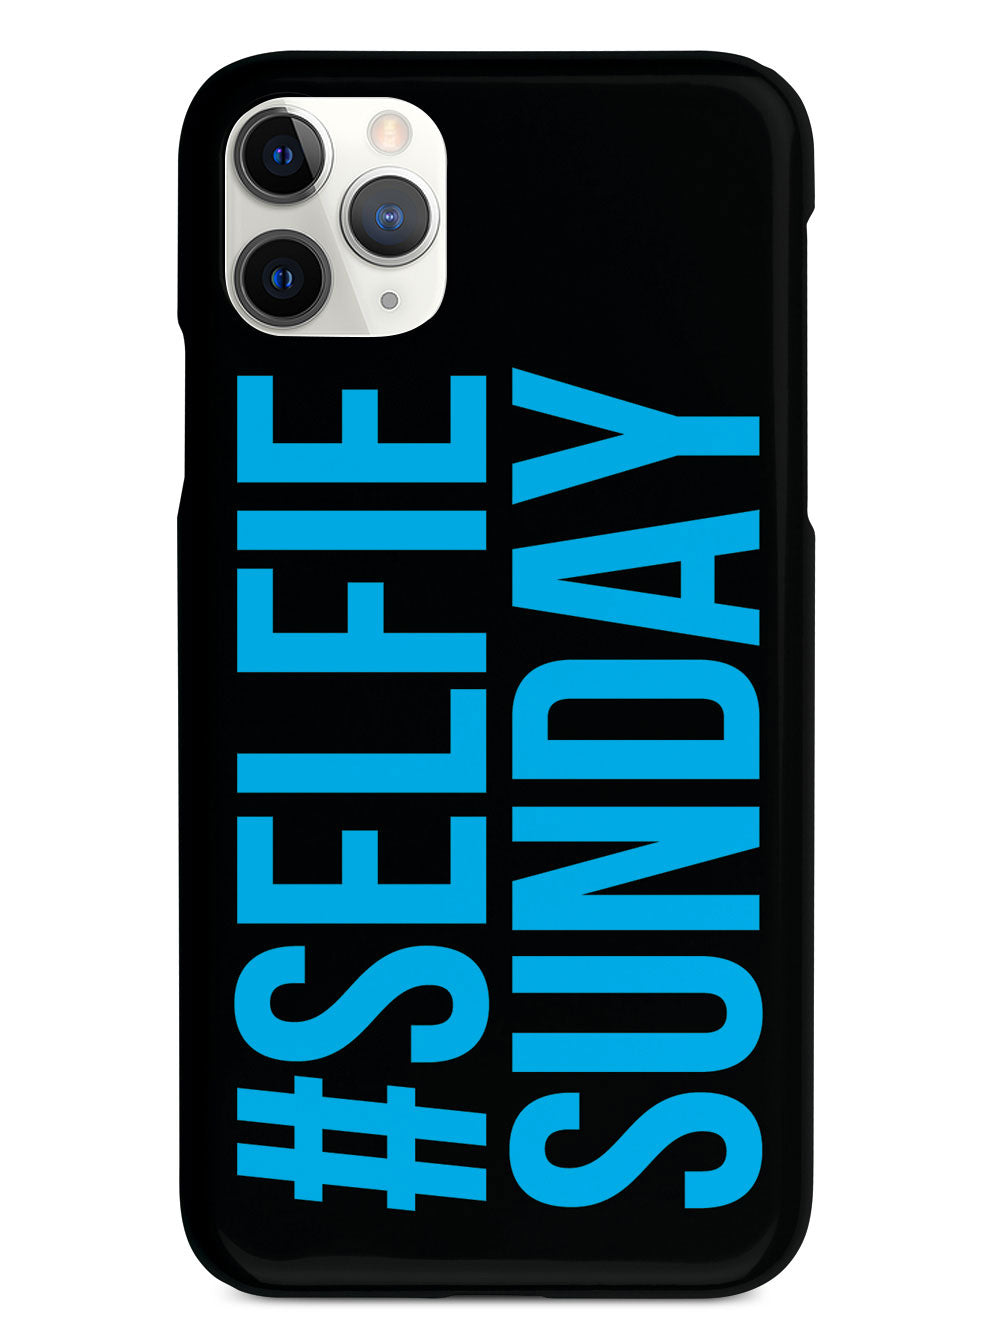 SelfieSunday Blue Selfie Sunday Case – InspiredCases